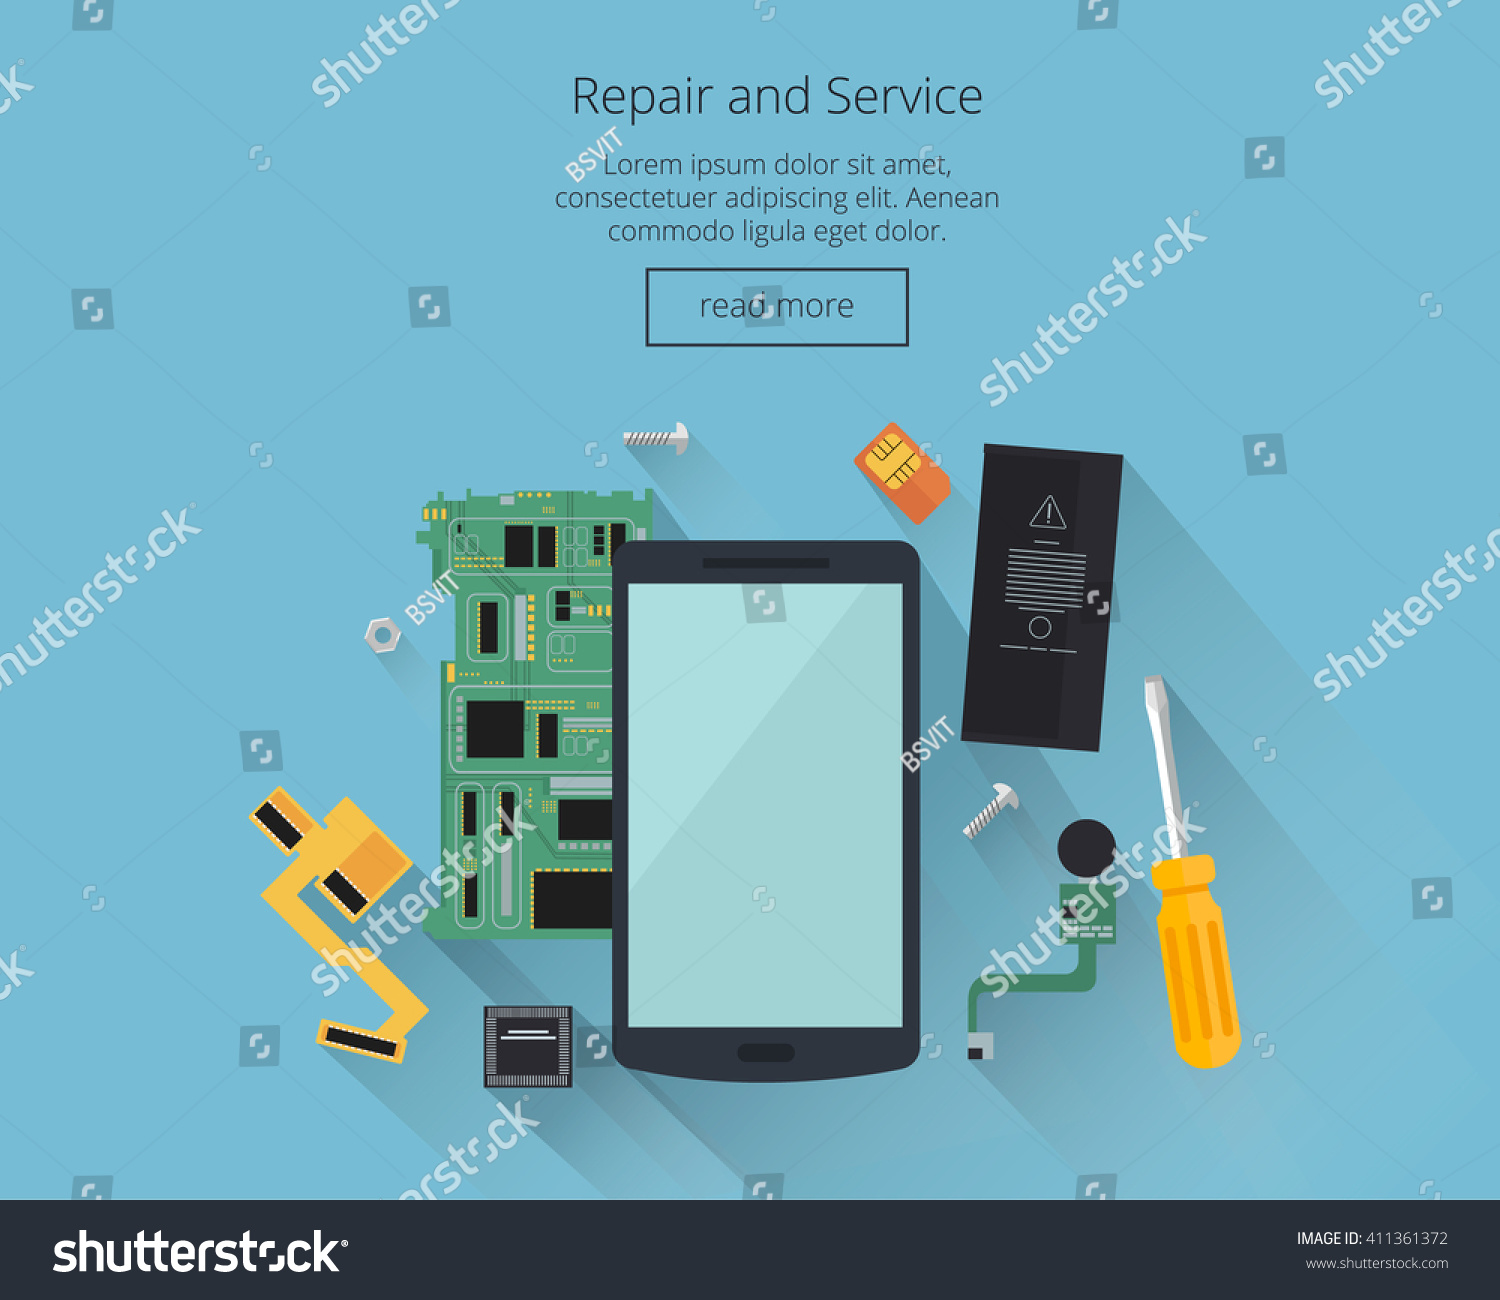 Mobile Repair Service Concept Smartphone Tools Stock Vector Royalty Parts Of A Laptop Computer Diagram And With Spare Partstop View